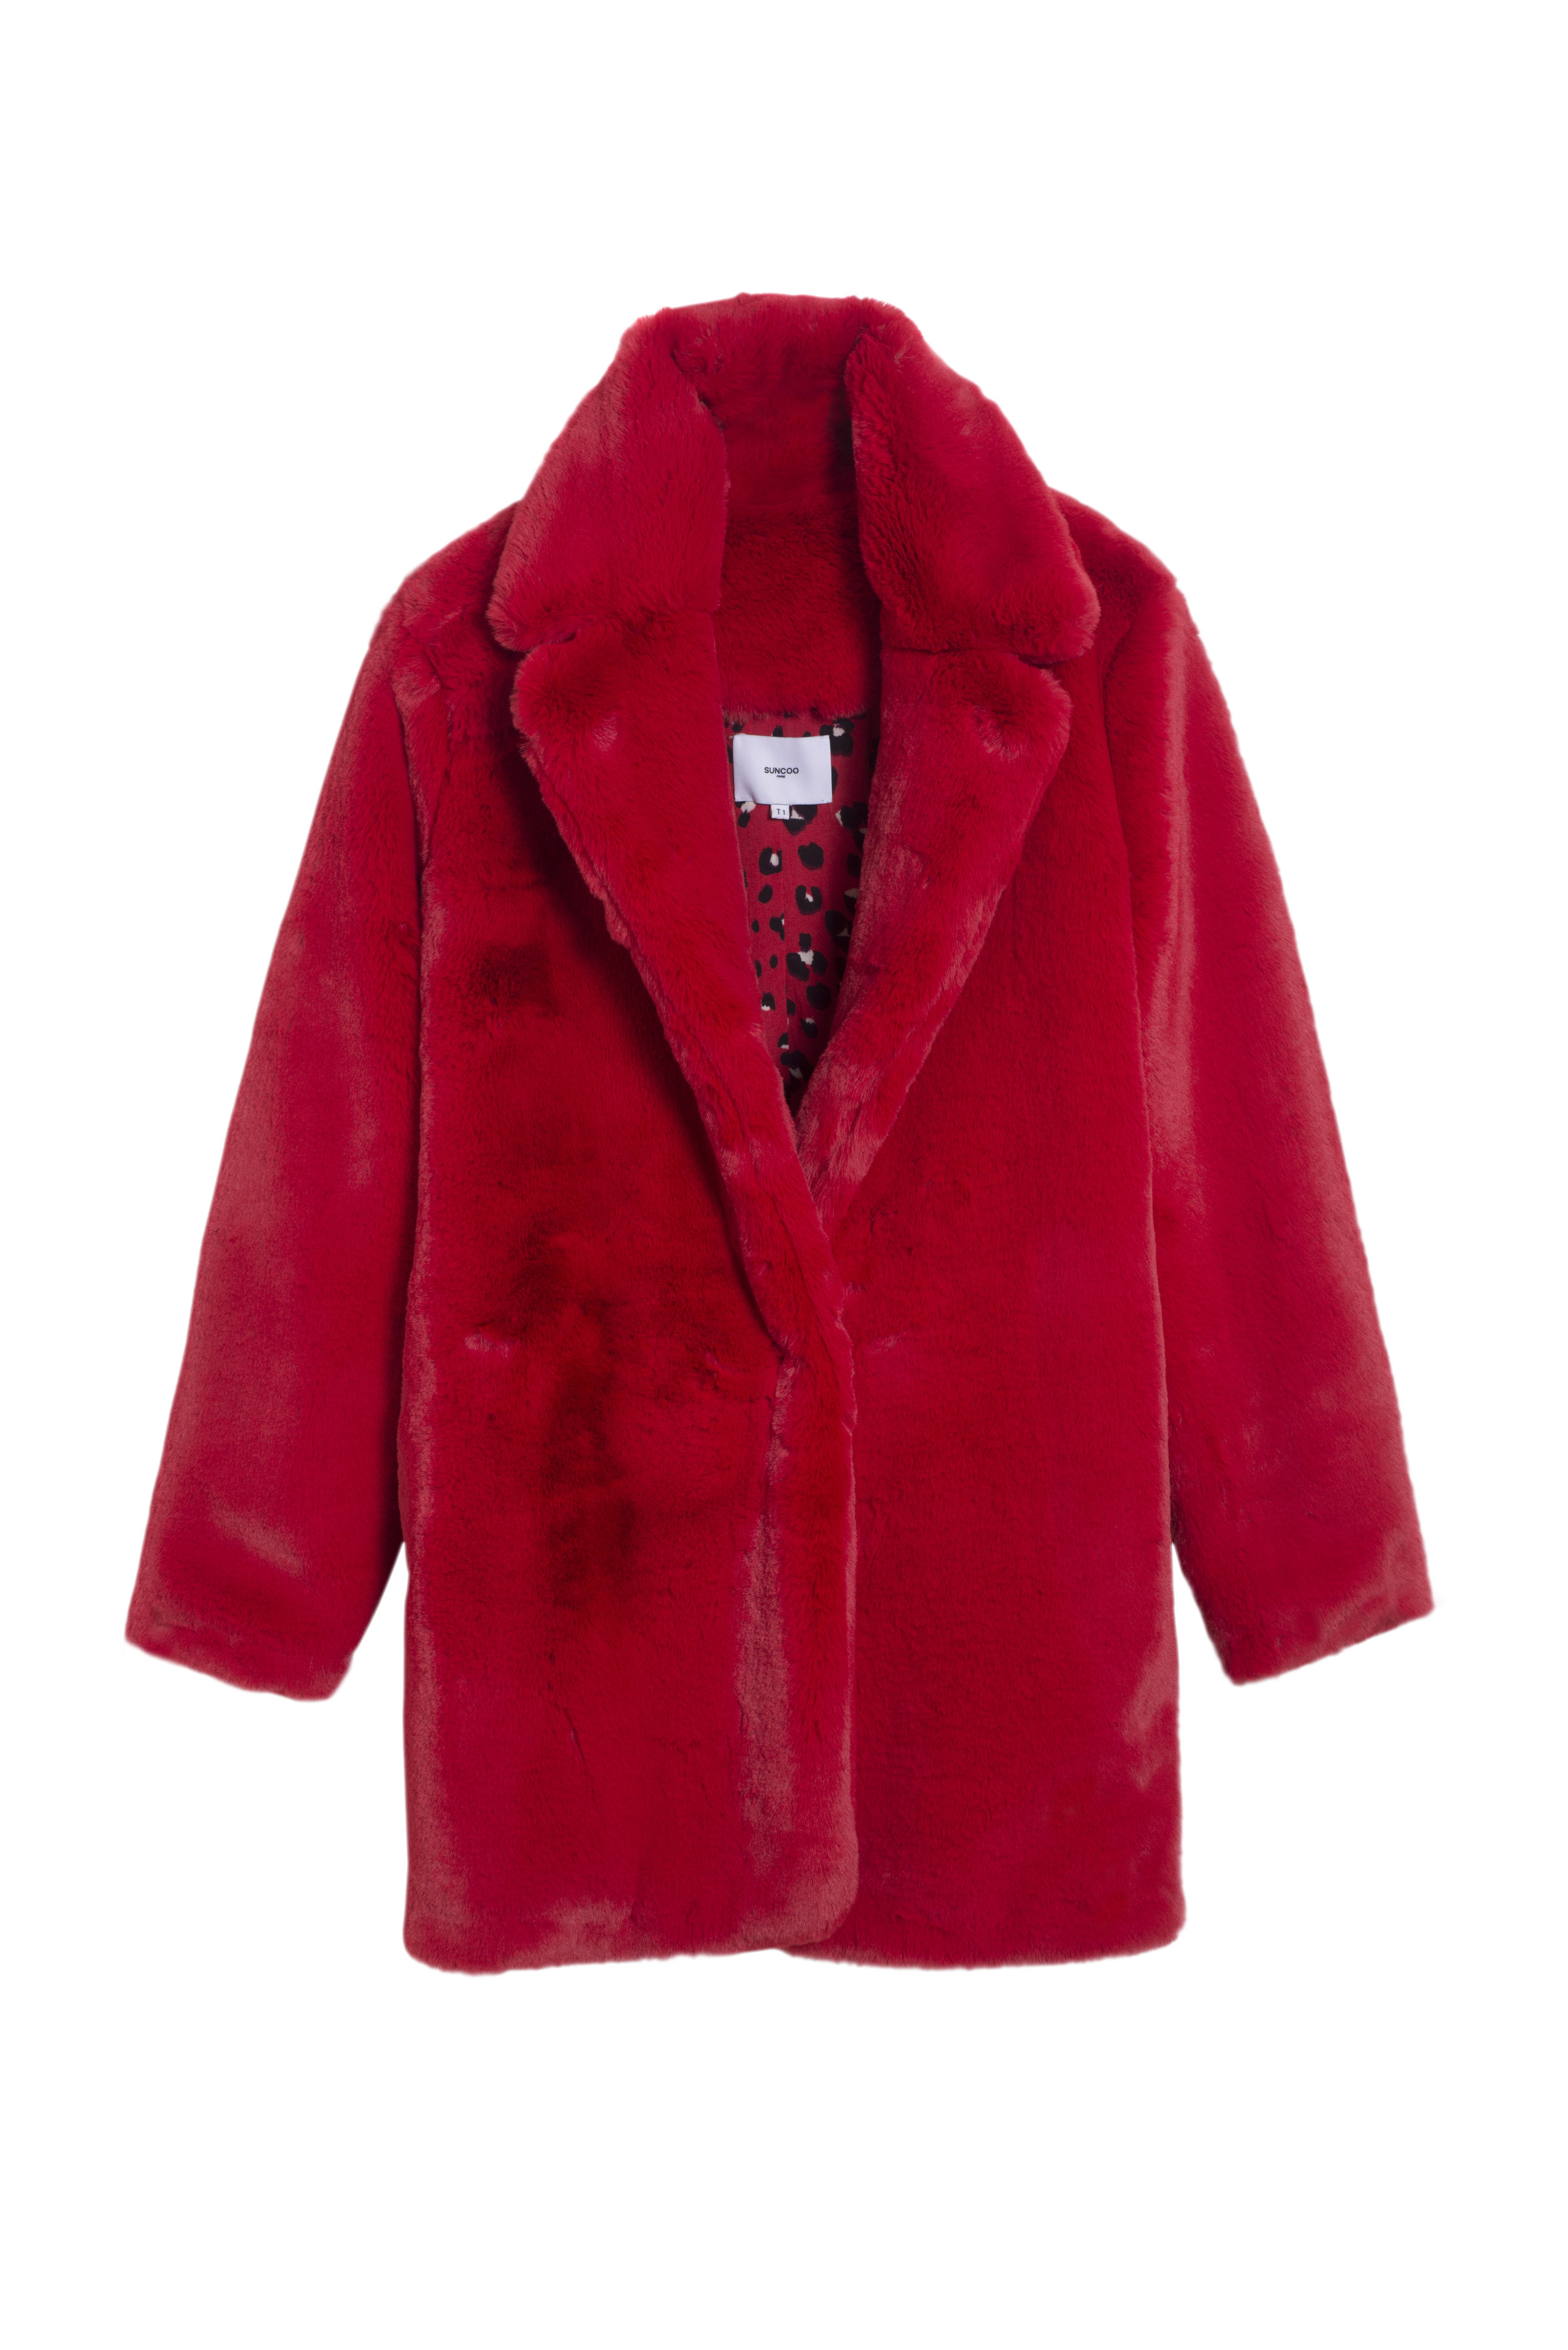 ELLA Coat $535 - Red is this season's bold color of choice. Throw on the vibrant Ella coat that will transition seamlessly from day to night. The wide cut hits mid-thigh and the fluffy faux fur is just as soft as the real thing—and just as warm.